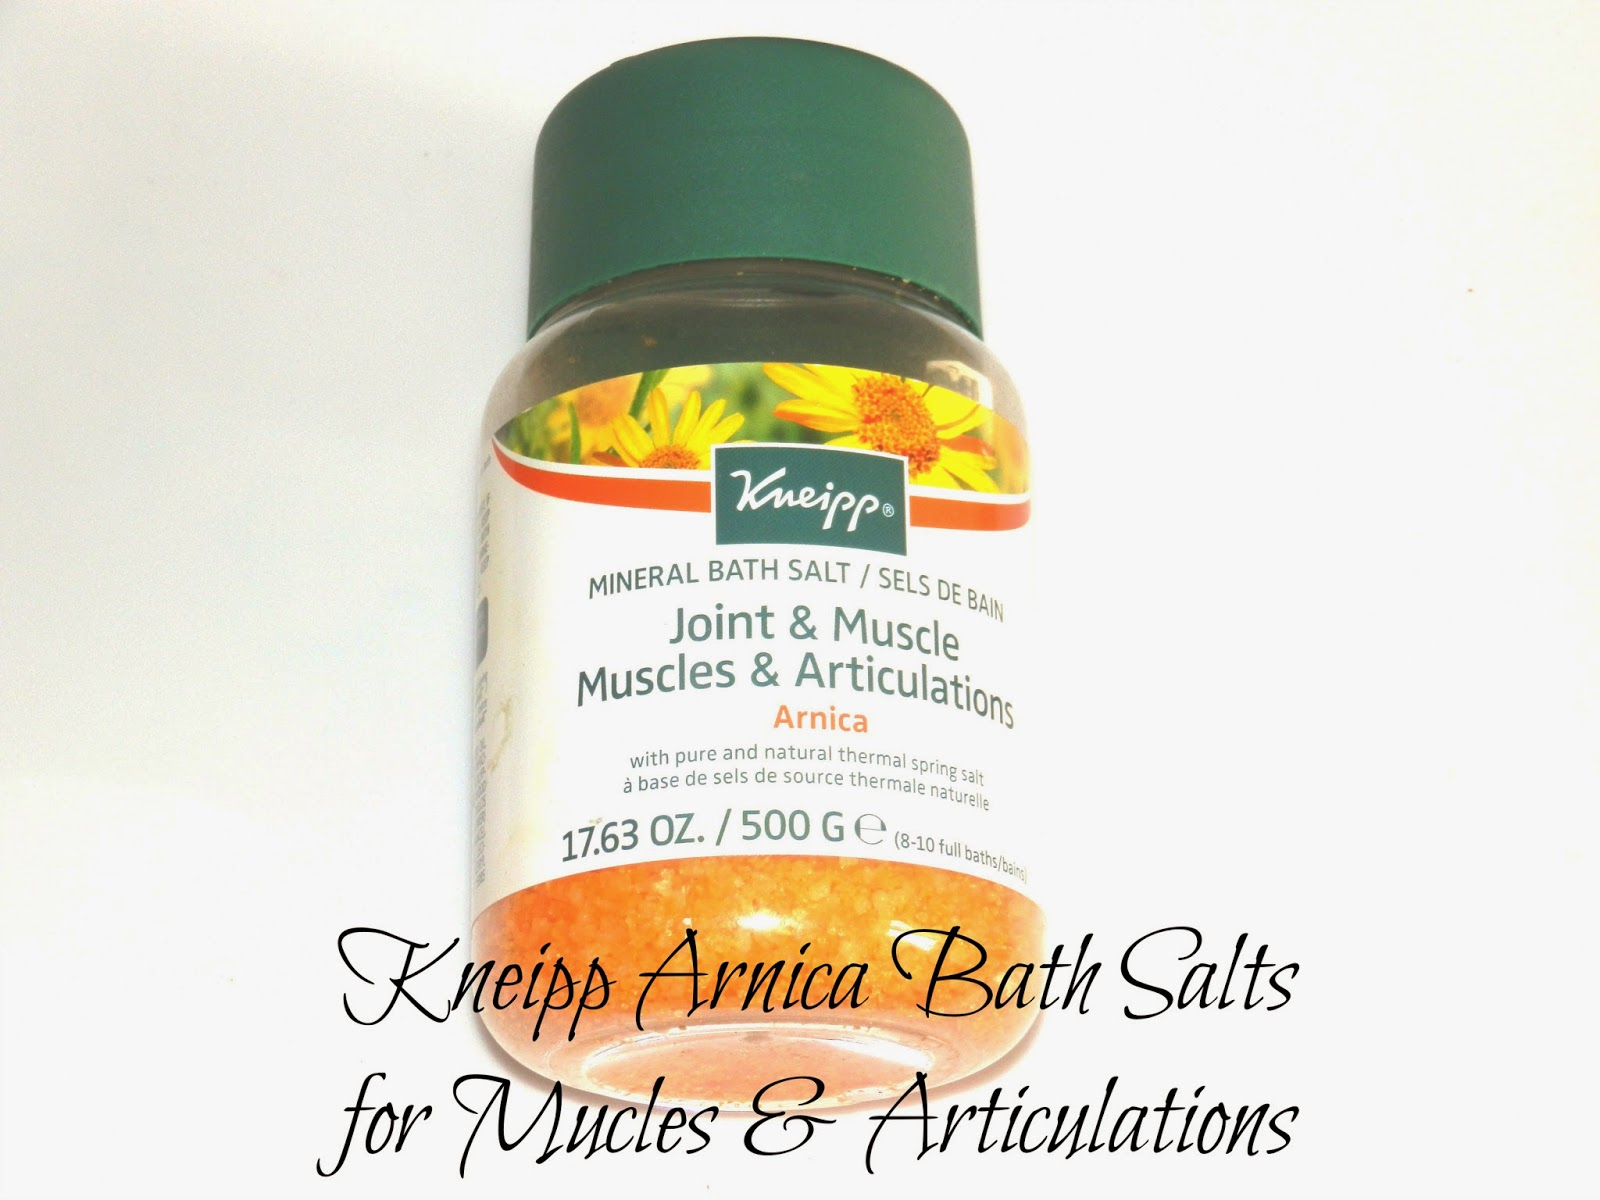 Kneipp Arnica Mineral Bath Salts Reviews